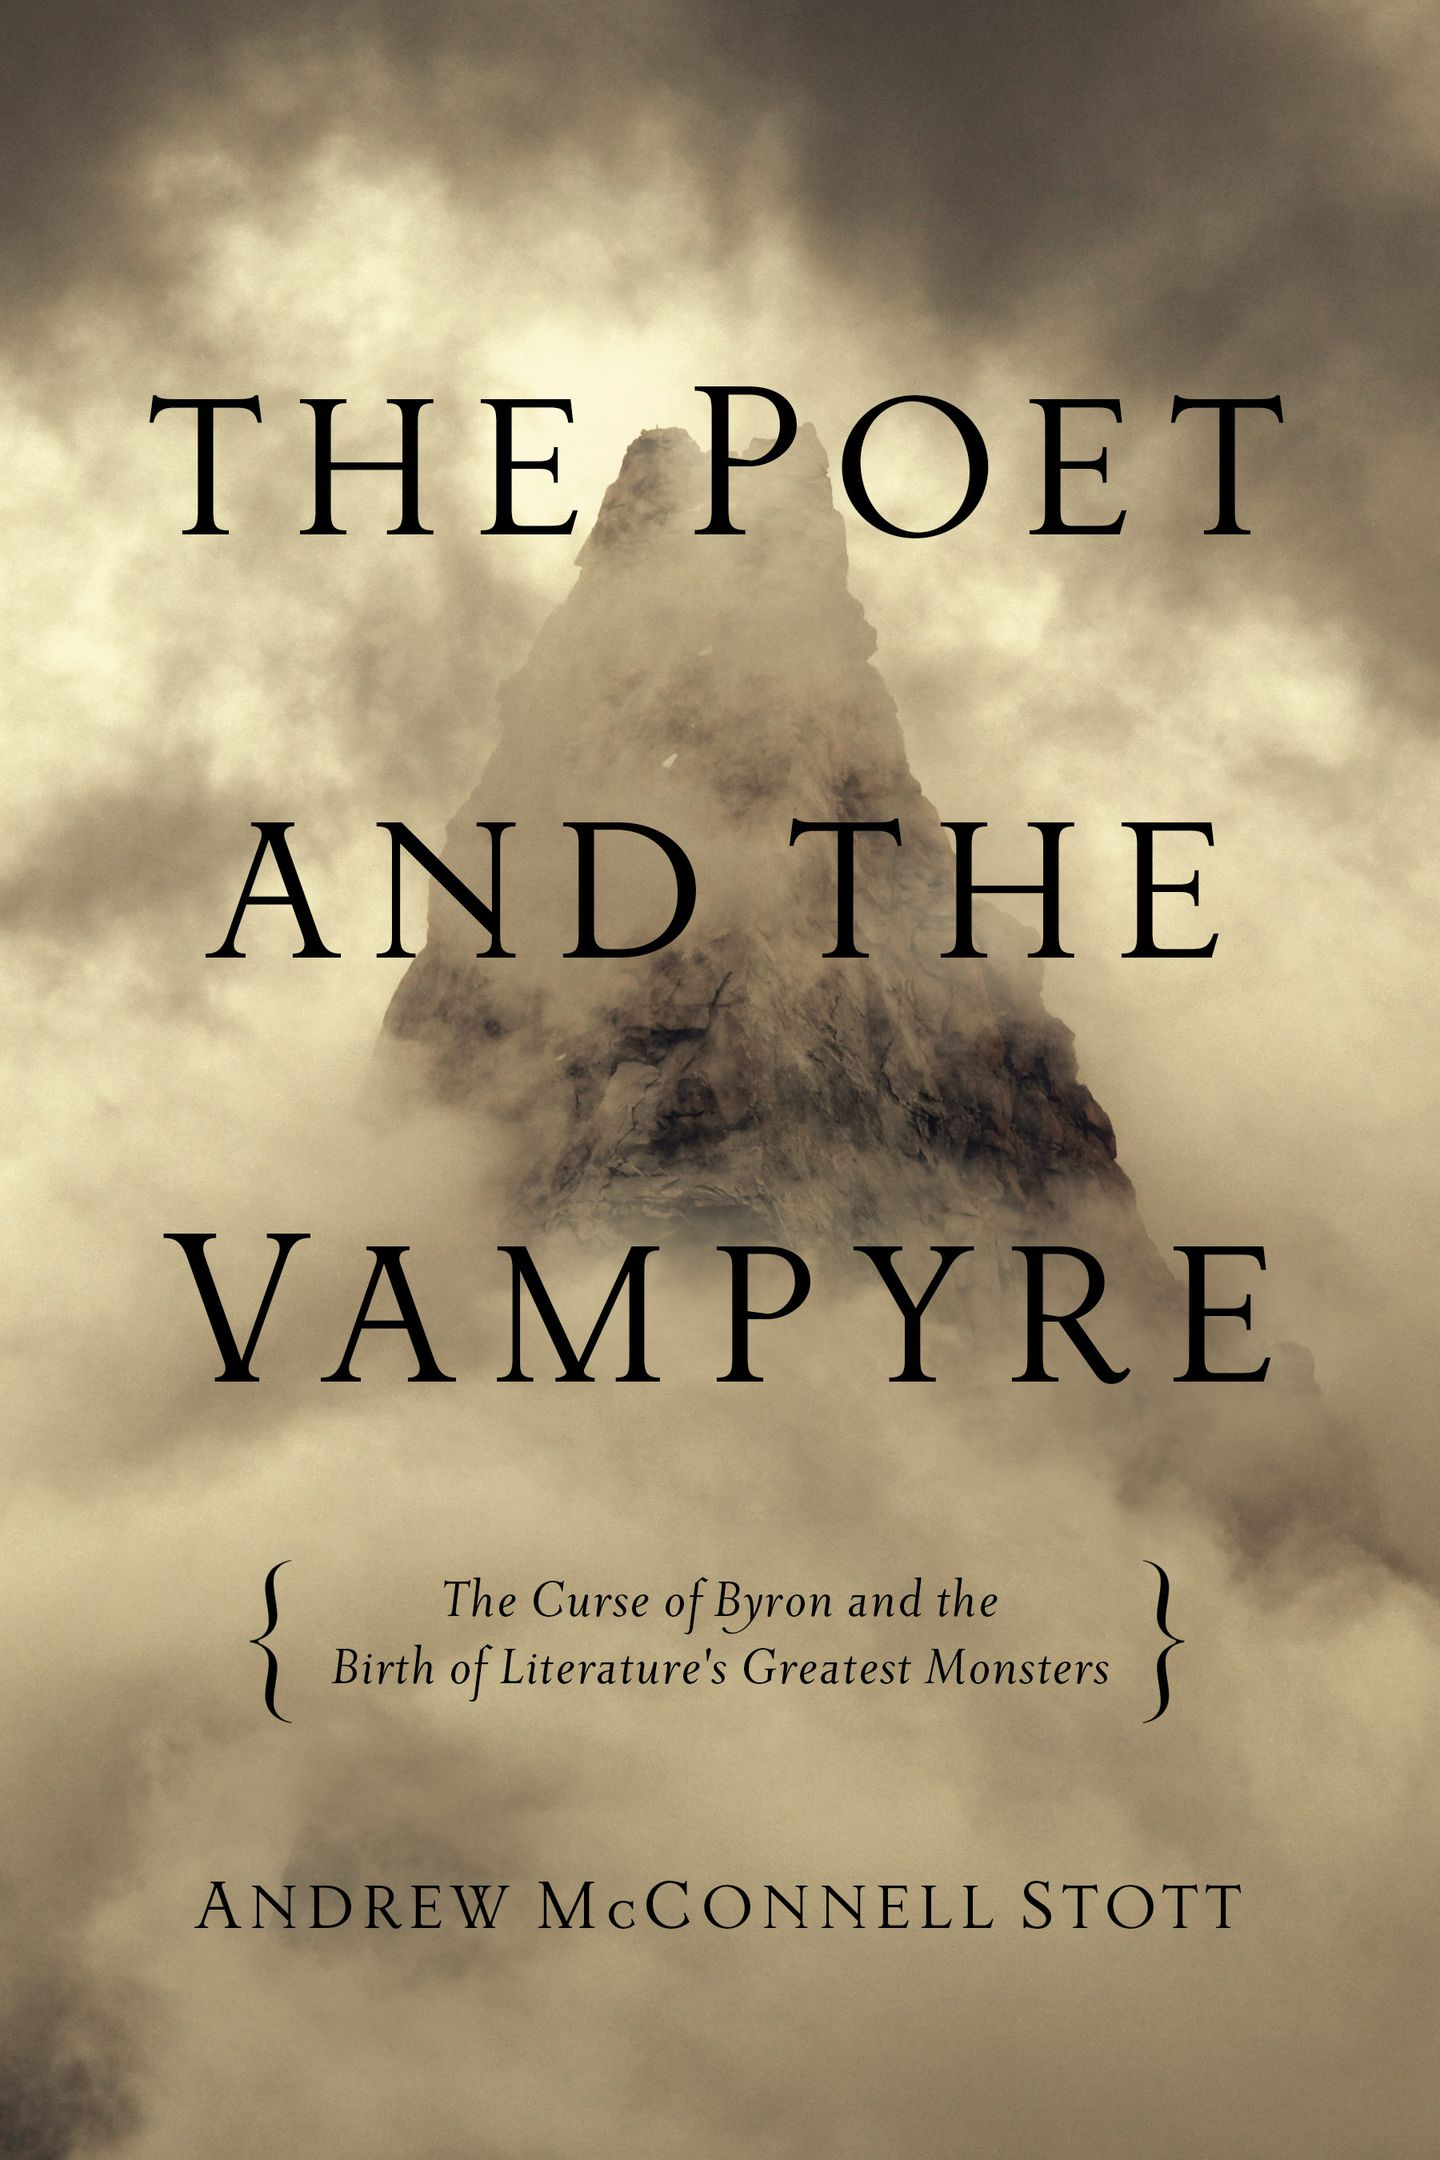 The Poet and the Vampyre' by Andrew McConnell Stott - The